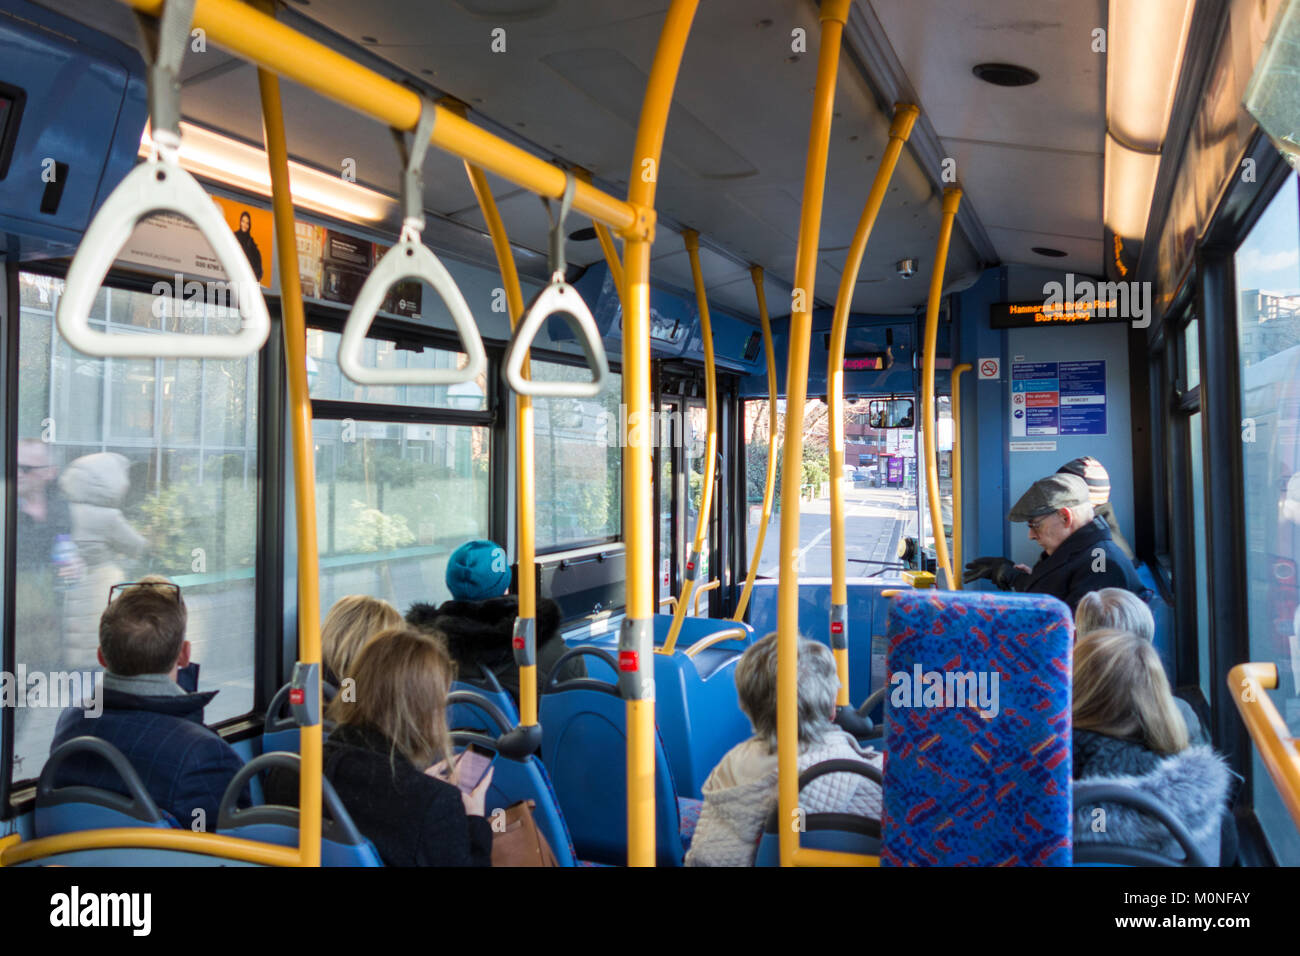 TFL 209 Bus interior and bus is about to move announcements - Stock Image